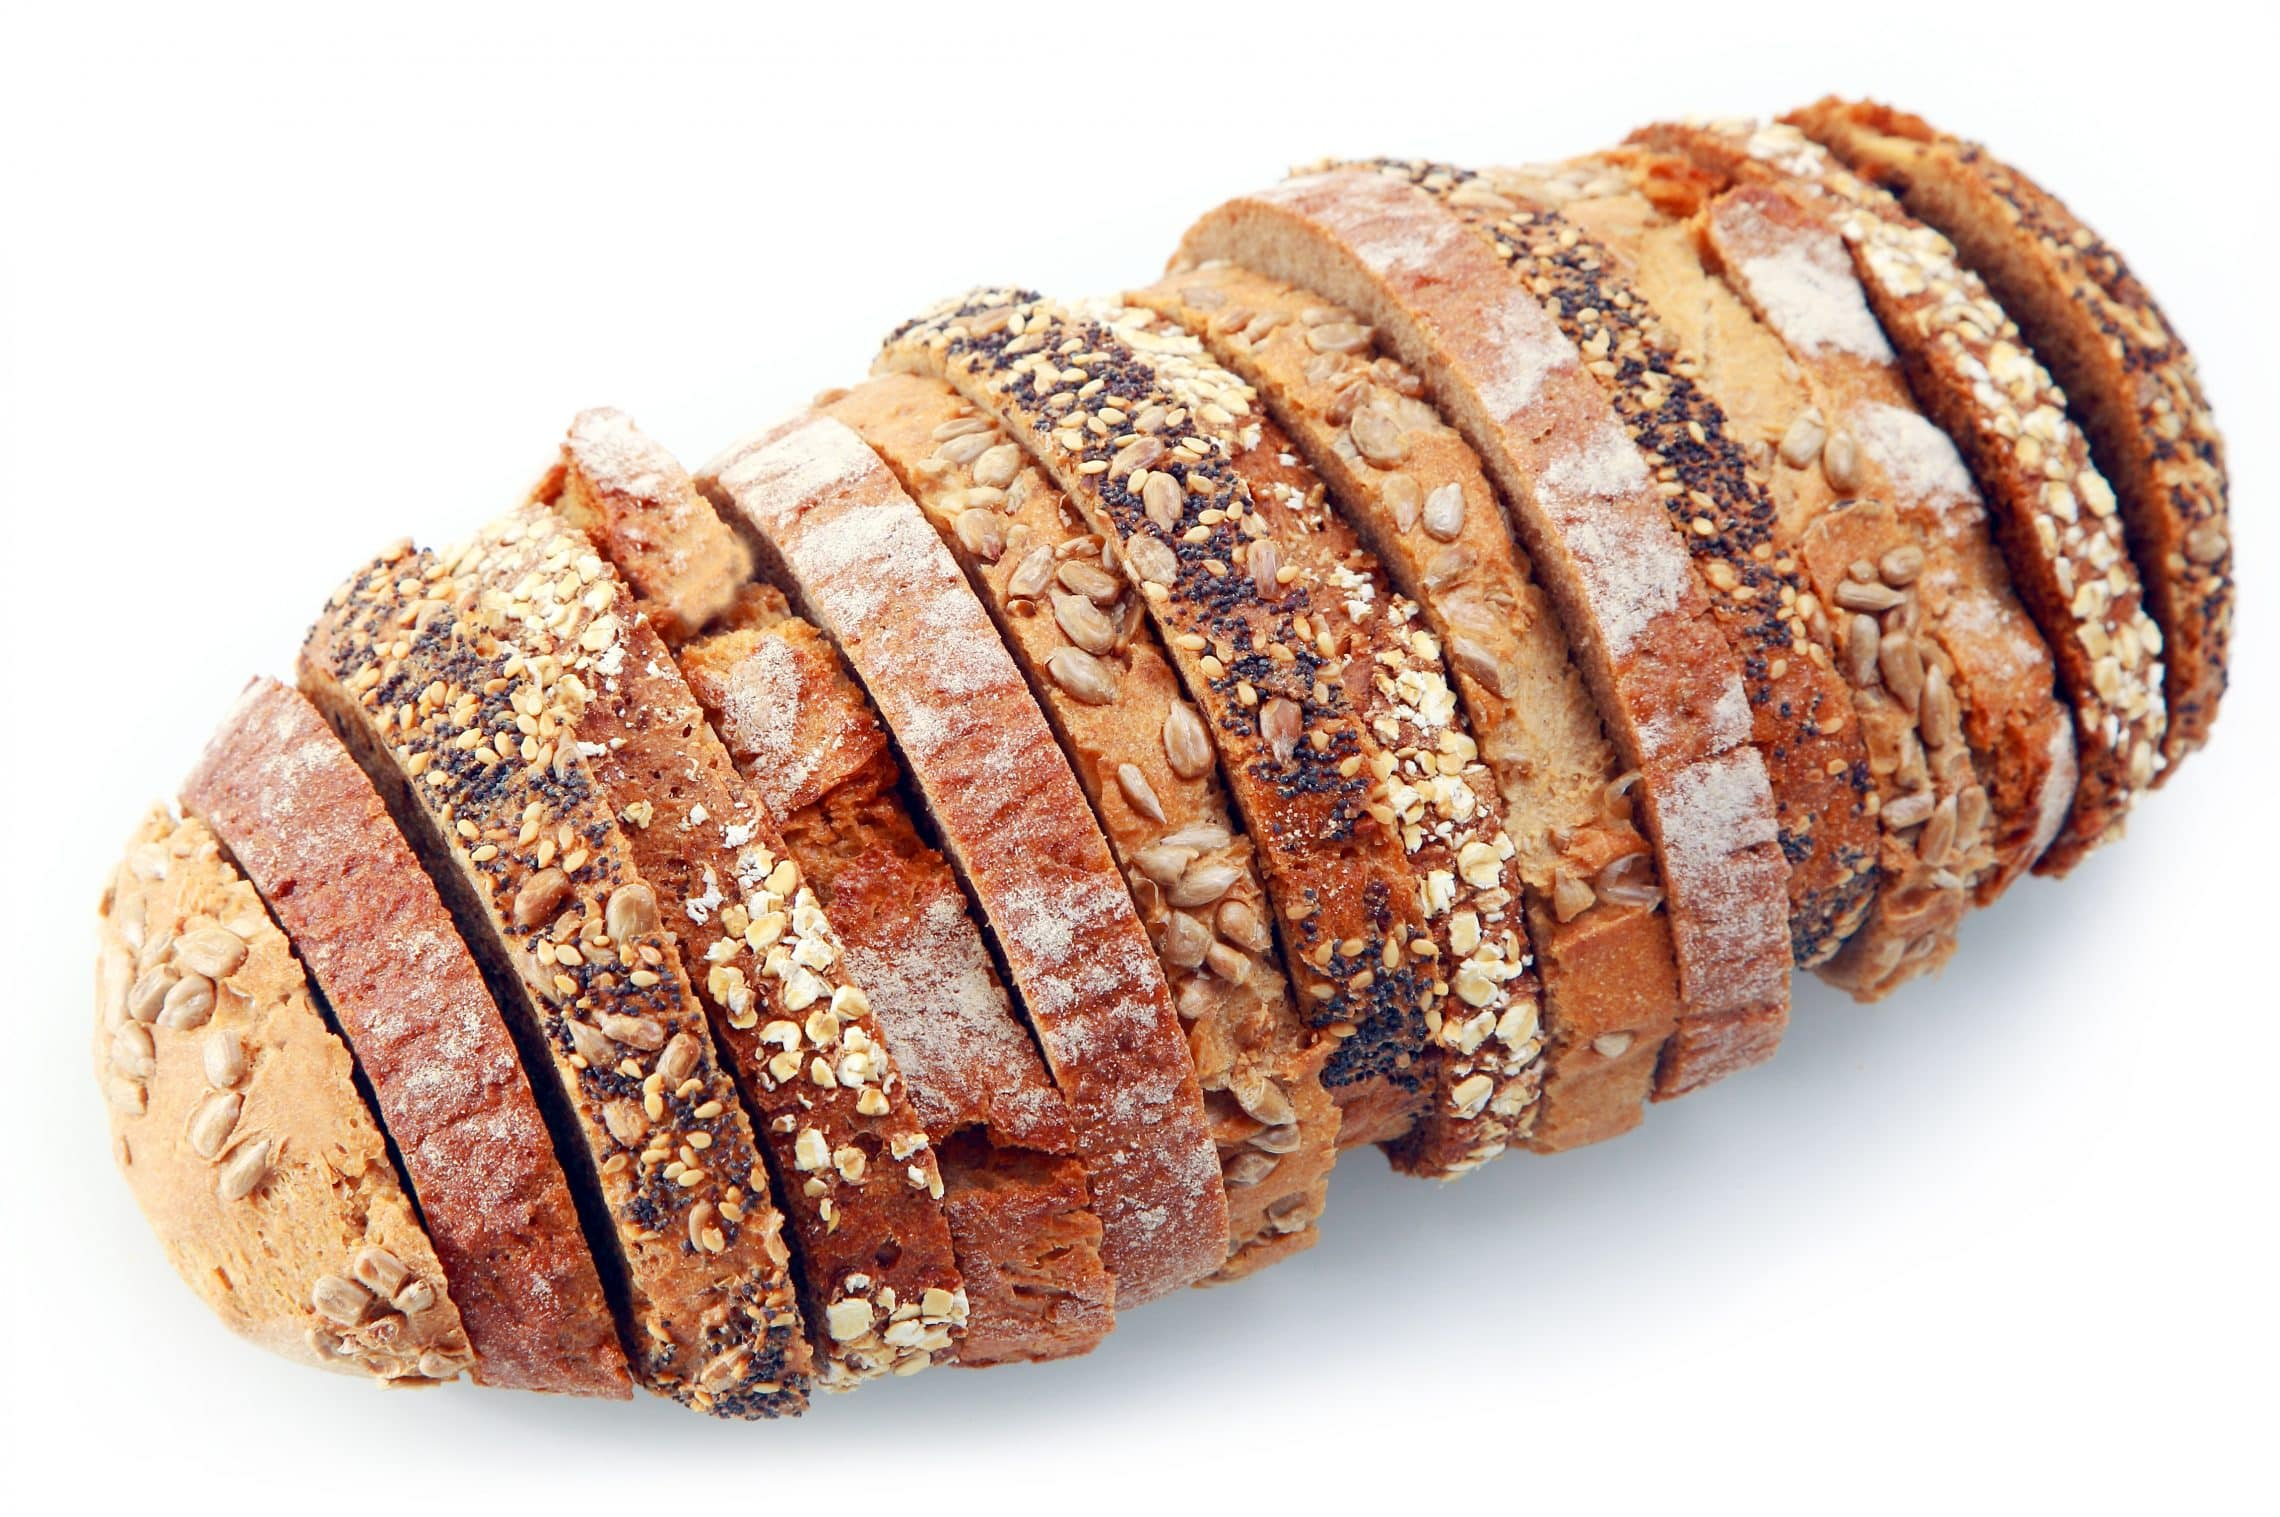 Principles of Healthy Eating: Whole Grains